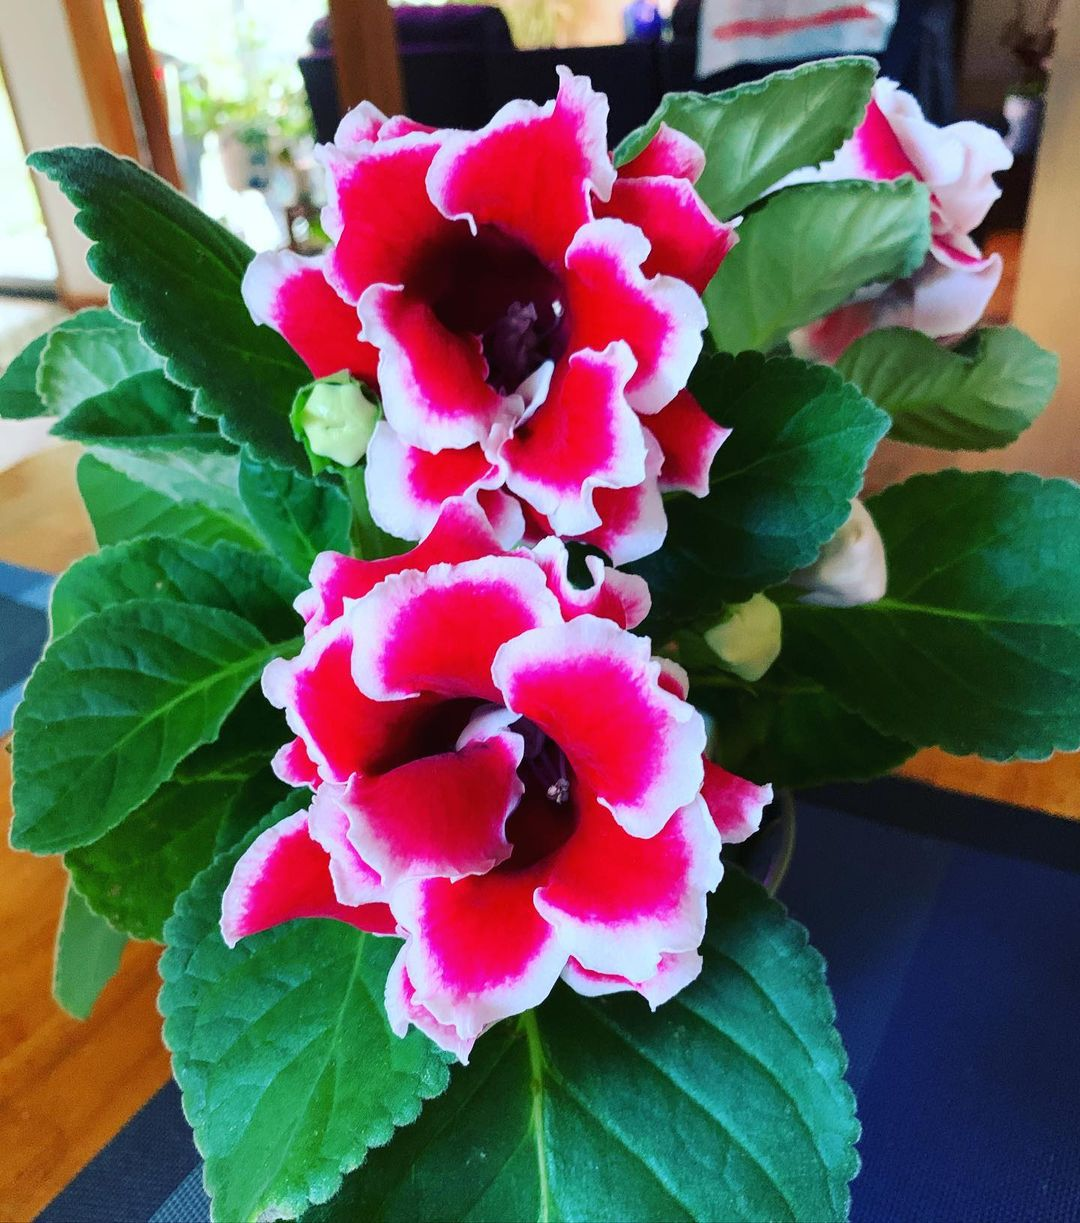 Everything You Need to Know About Growing and Caring For Your Gloxinia